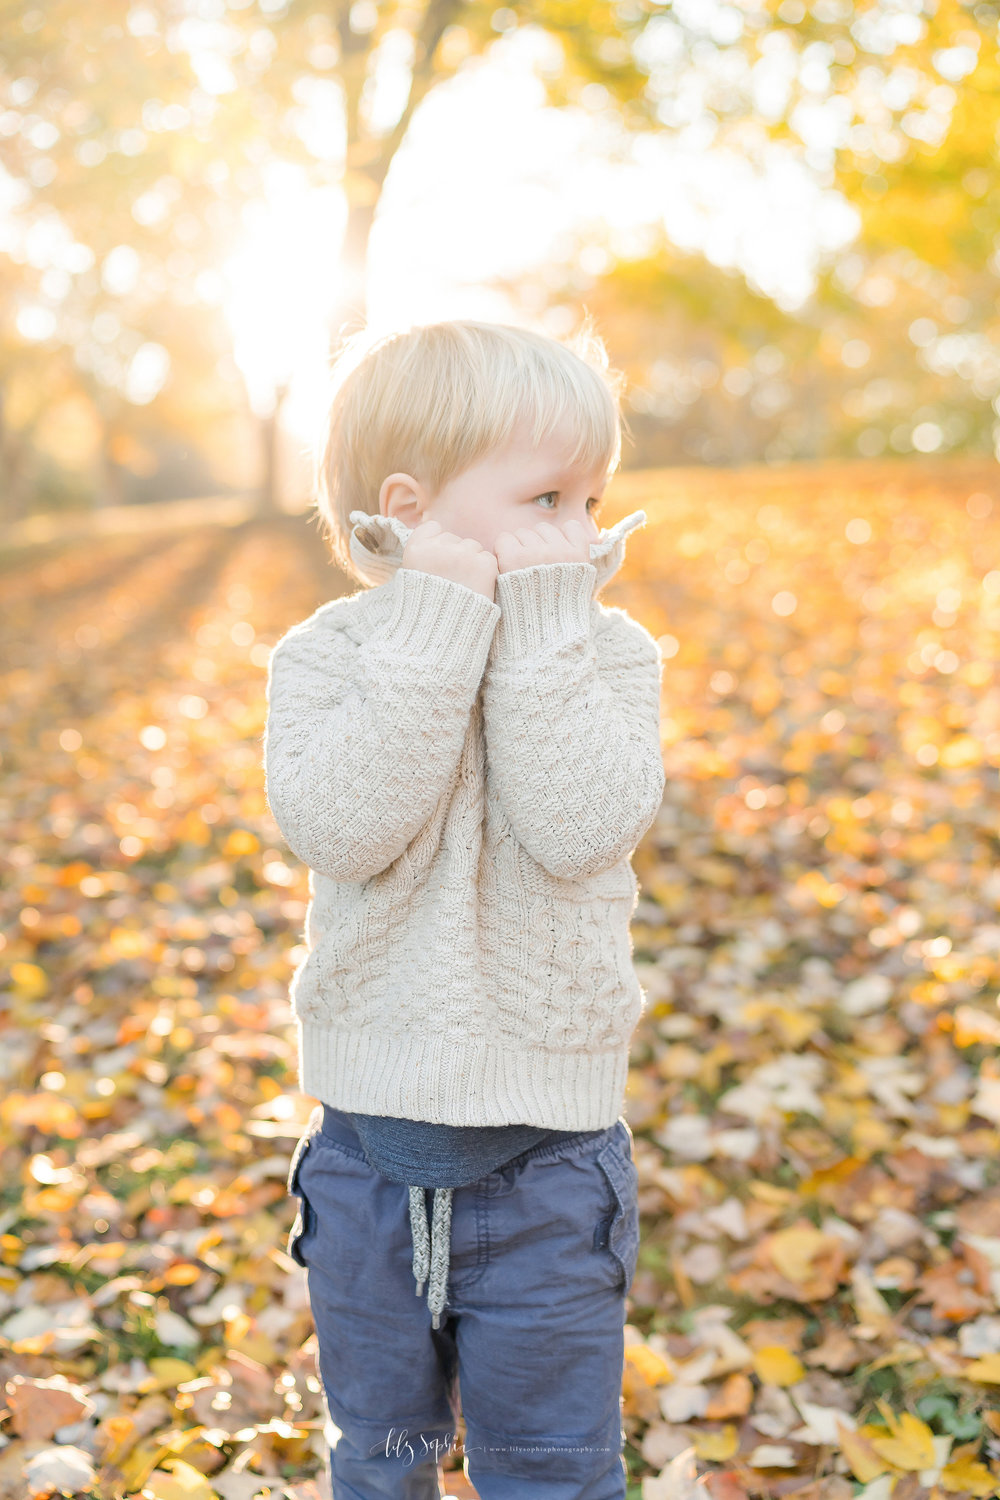 atlanta-midtown-brookhaven-decatur-lily-sophia-photography-photographer-portraits-grant-park-family-sunset-fall-outdoor-session-brothers-toddler-baby_0144.jpg